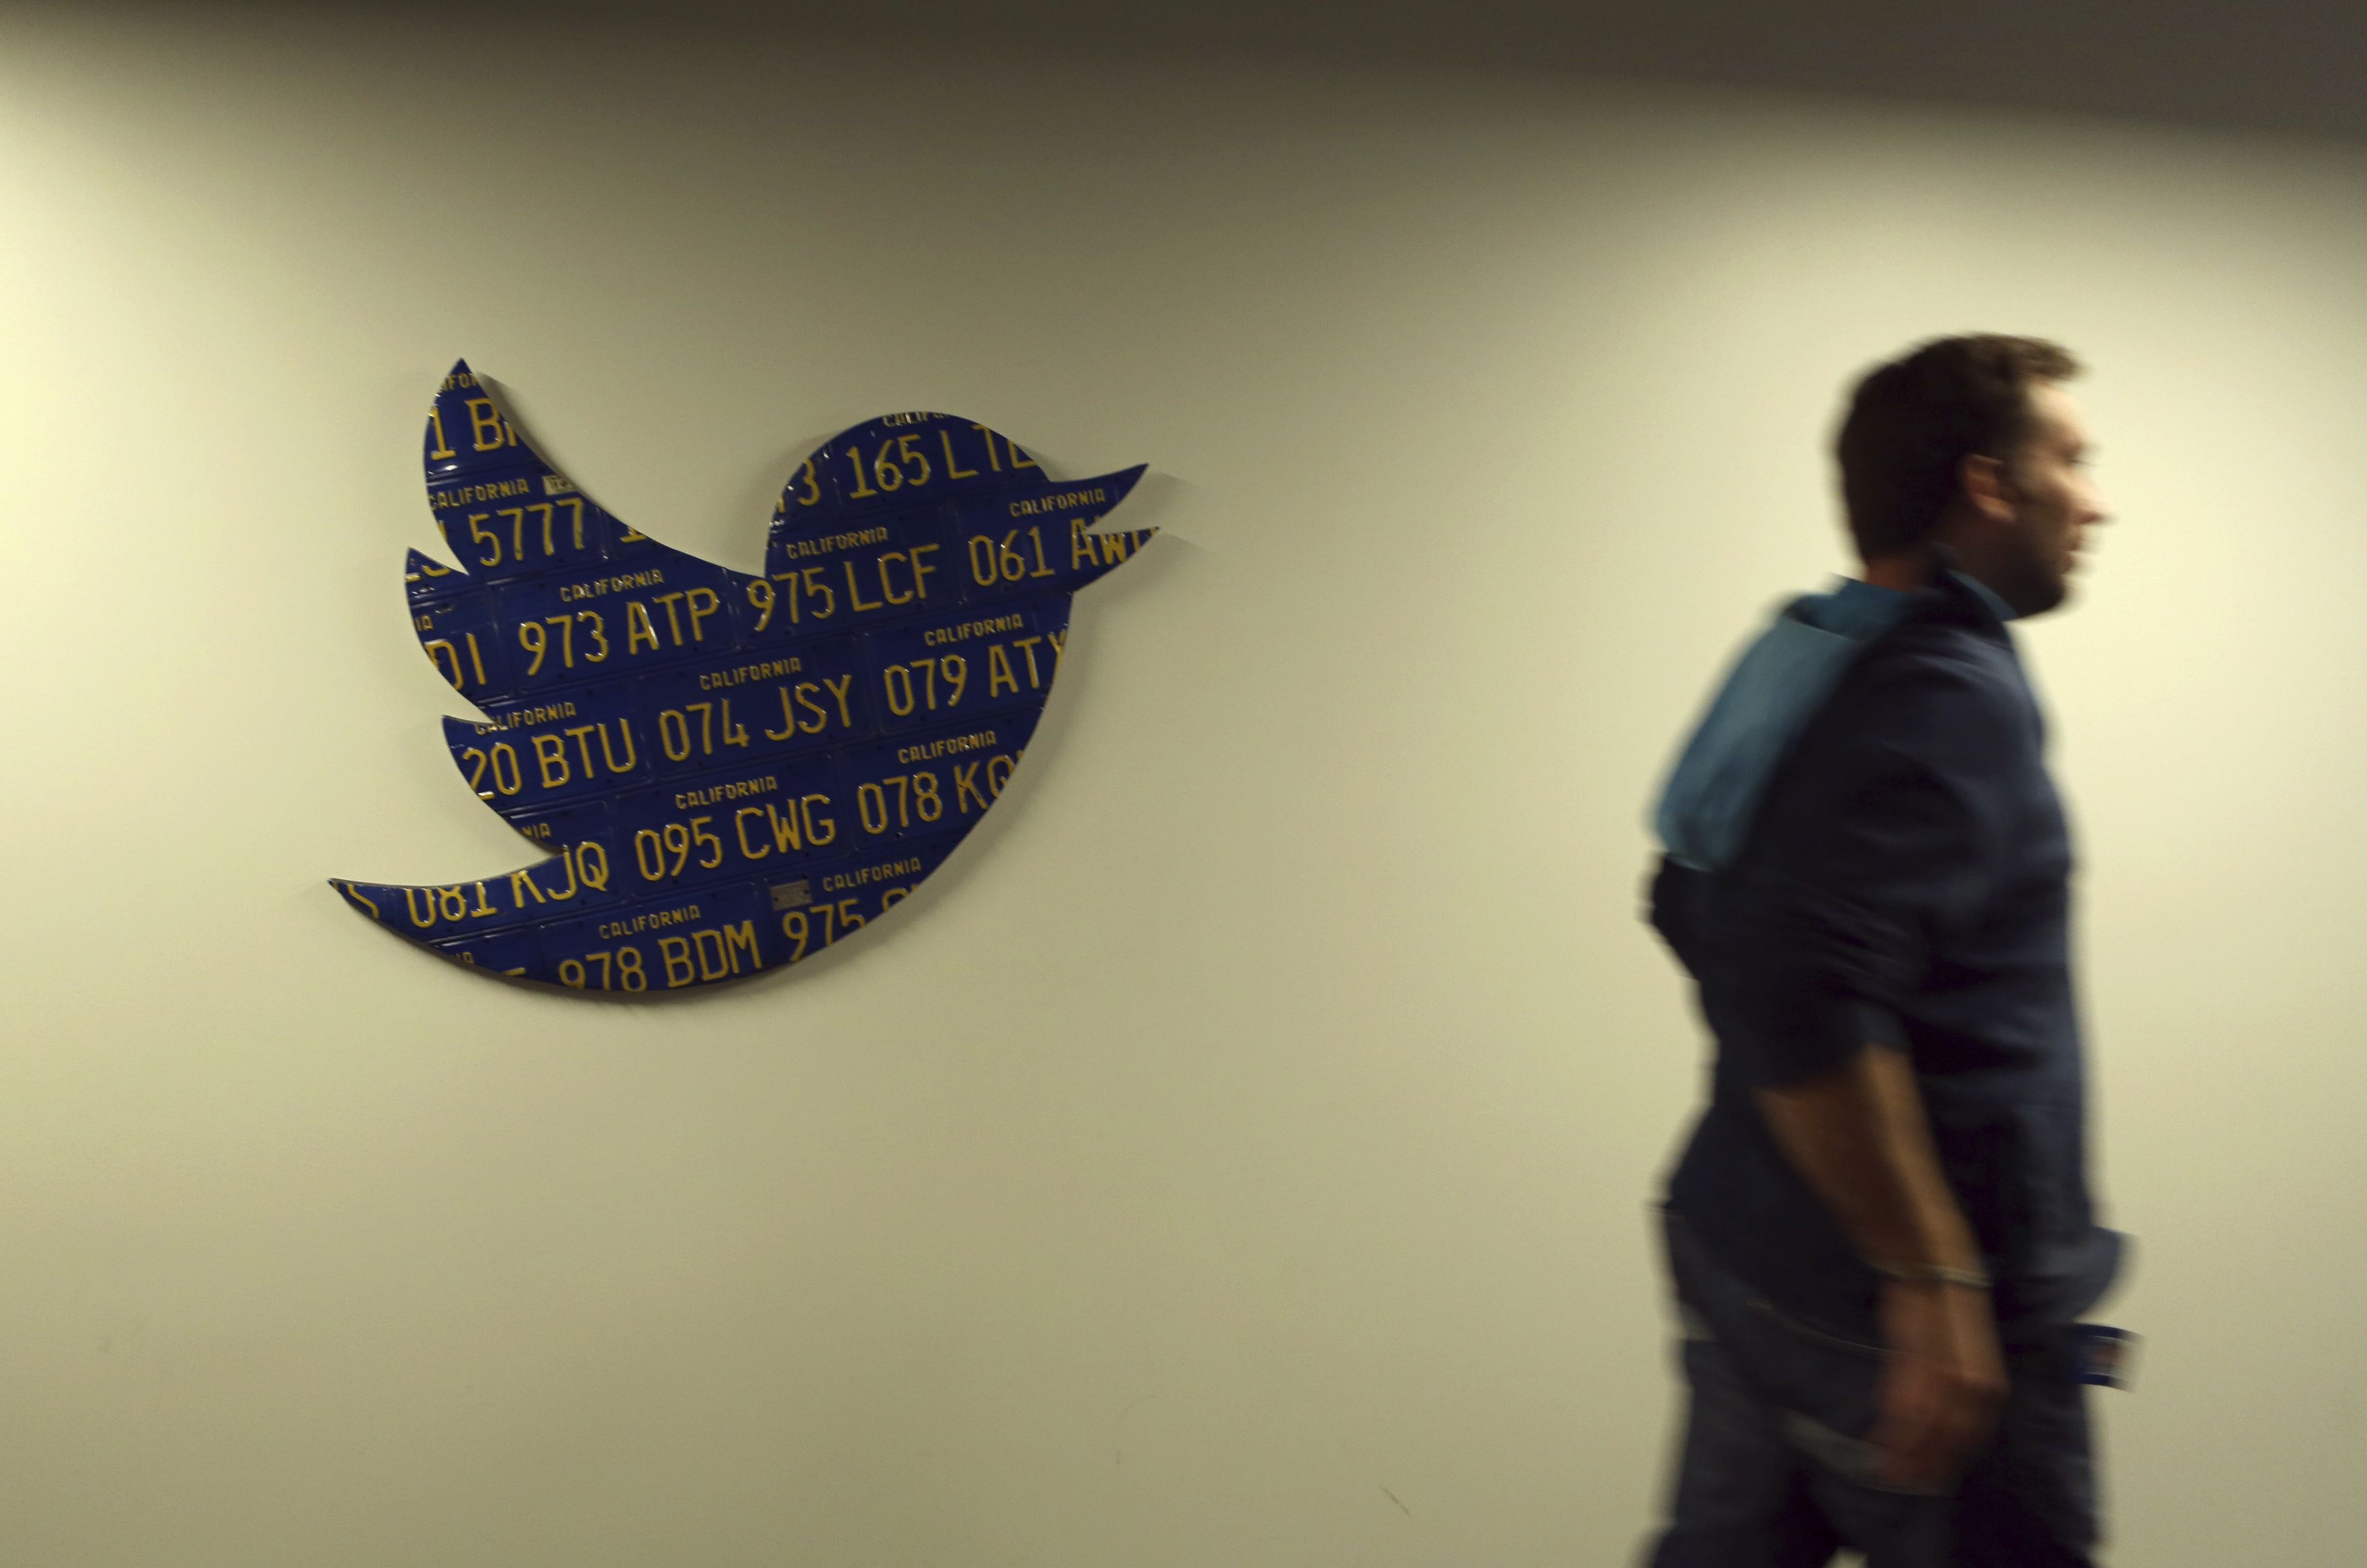 An employee walks past a Twitter logo made from Californian license plates at the company's headquarters in San Francisco, California October 4, 2013. Twitter Inc, racing toward the largest Silicon Valley IPO since Facebook Inc's 2012 coming-out party, hopes to woo investors with rip-roaring revenue growth despite having posted big losses over the past three years. The eight-year-old online messaging service gave potential investors their first glance at its financials on Thursday when it publicly filed its IPO documents, setting the stage for one of the most-anticipated debuts in over a year.